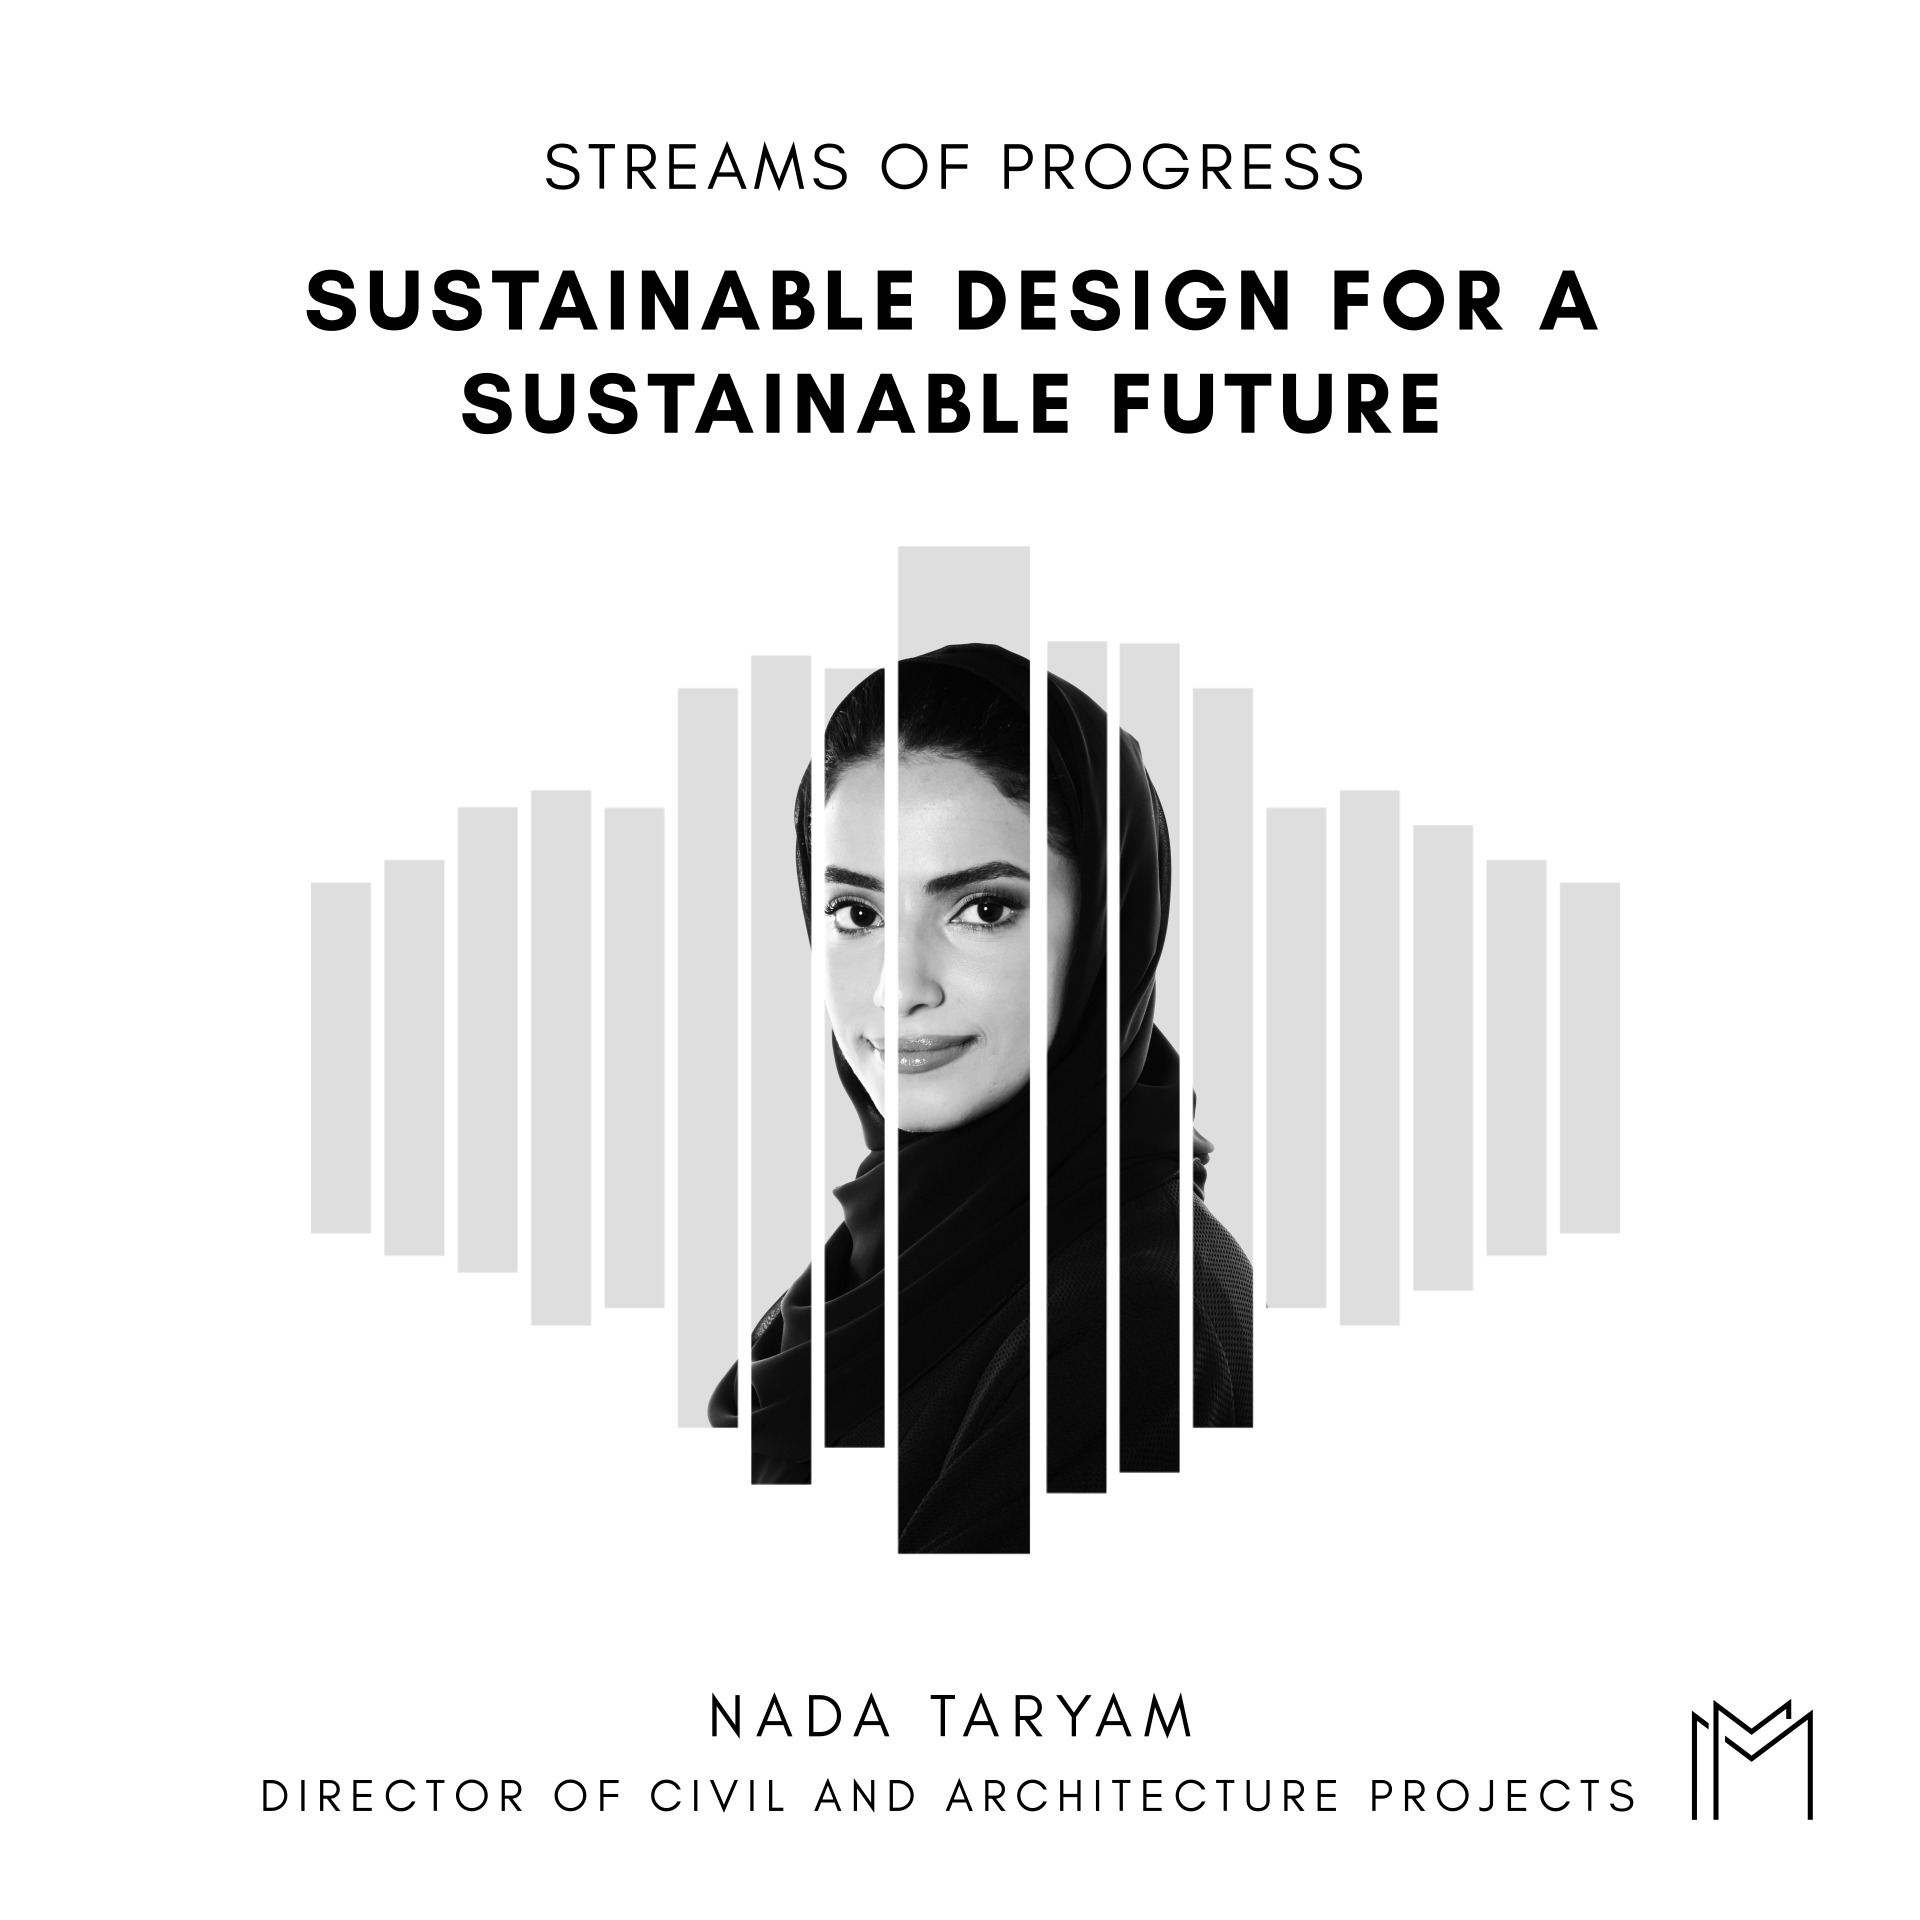 Ep023 - Nada Taryam, Director of Civil and Architectural Projects